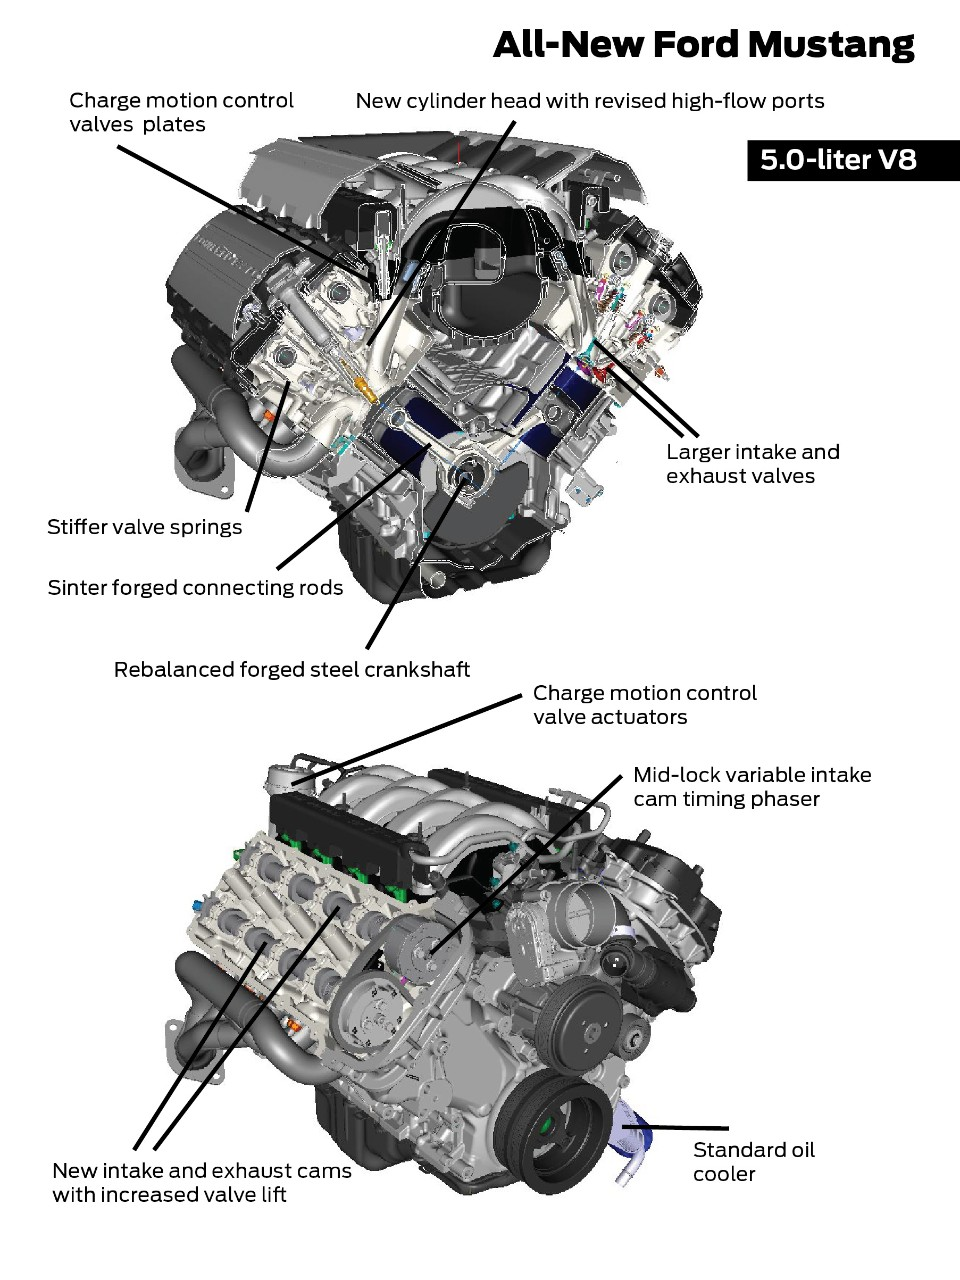 Mustang - 2015 - engine V8 Coyote - infographic